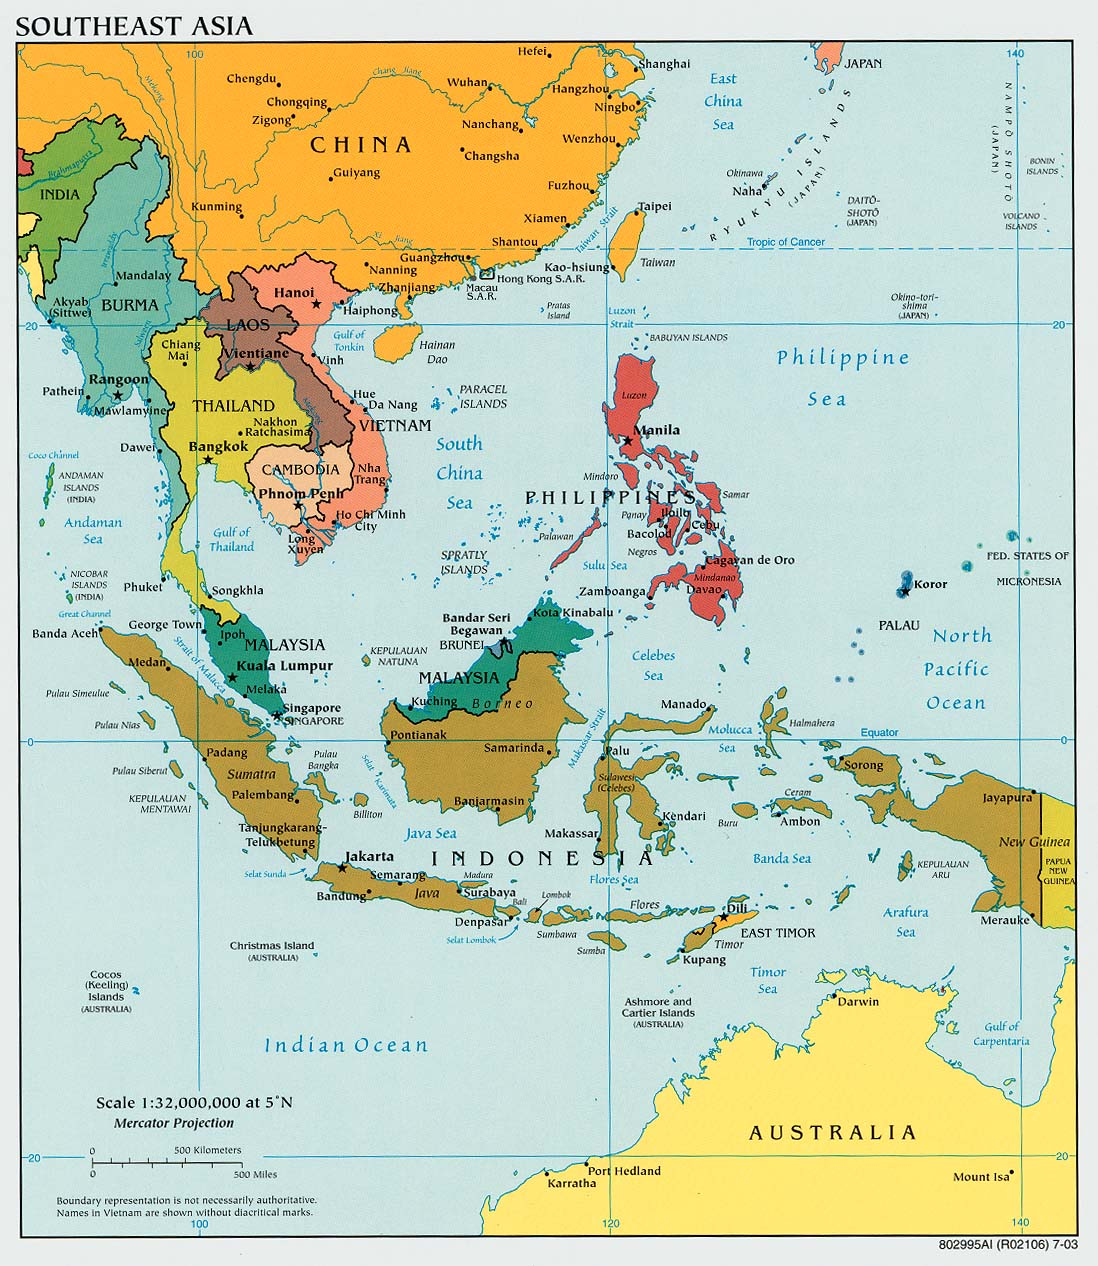 Map of South East Asia (Political Map) : Worldofmaps.net - online ...